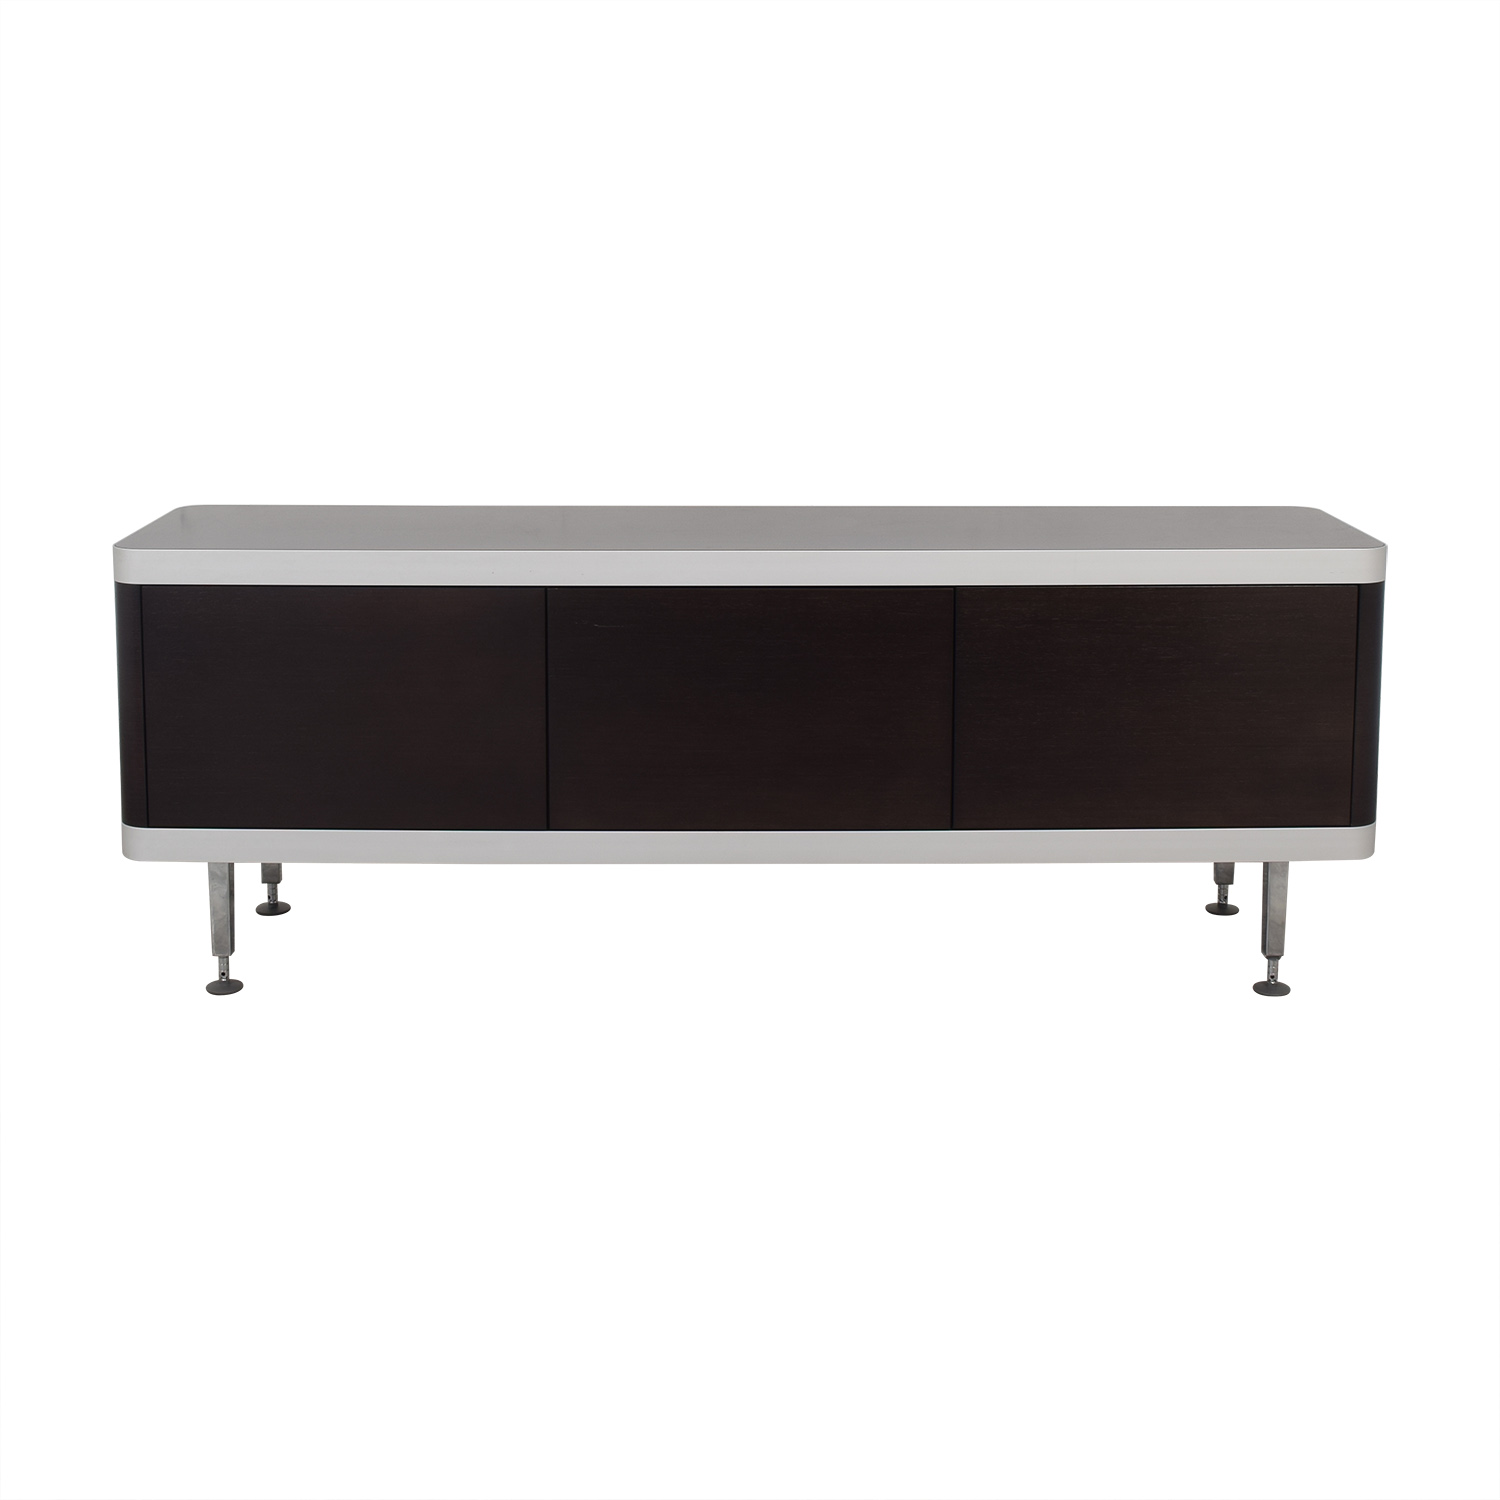 shop OFS Eleven Series Storage Credenza OFS Storage